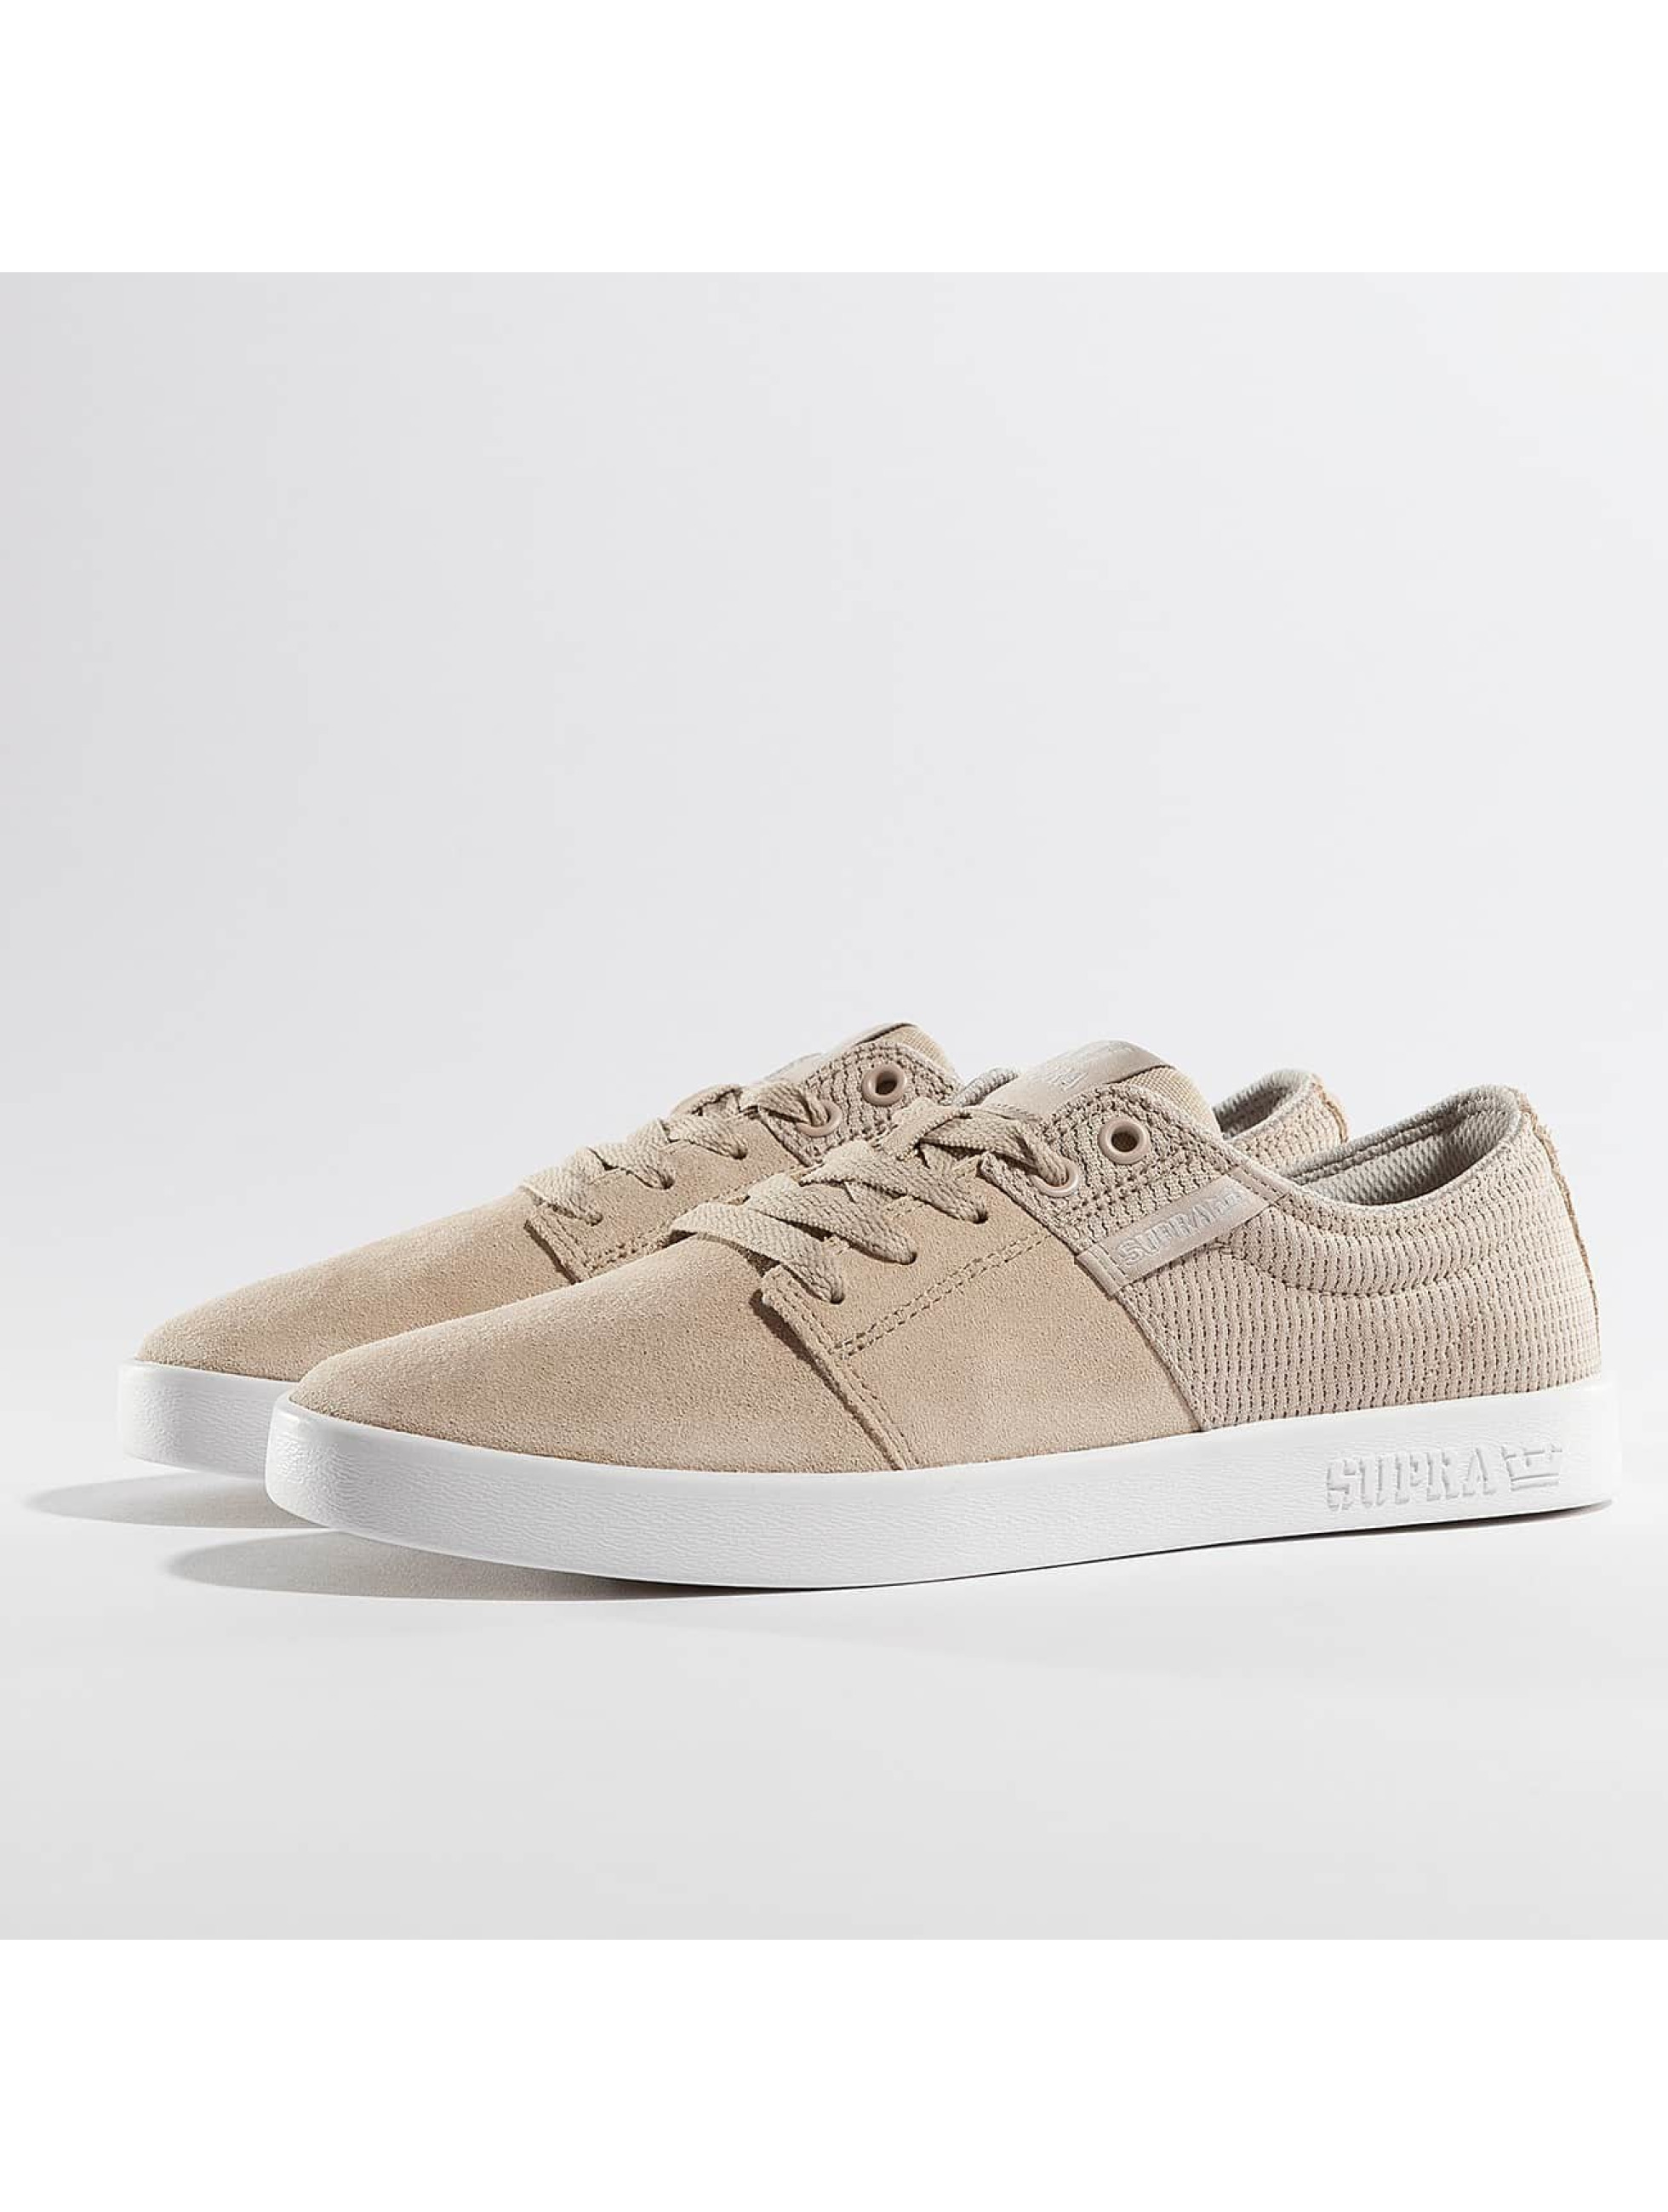 Supra Stacks II Sneakers Tan/White